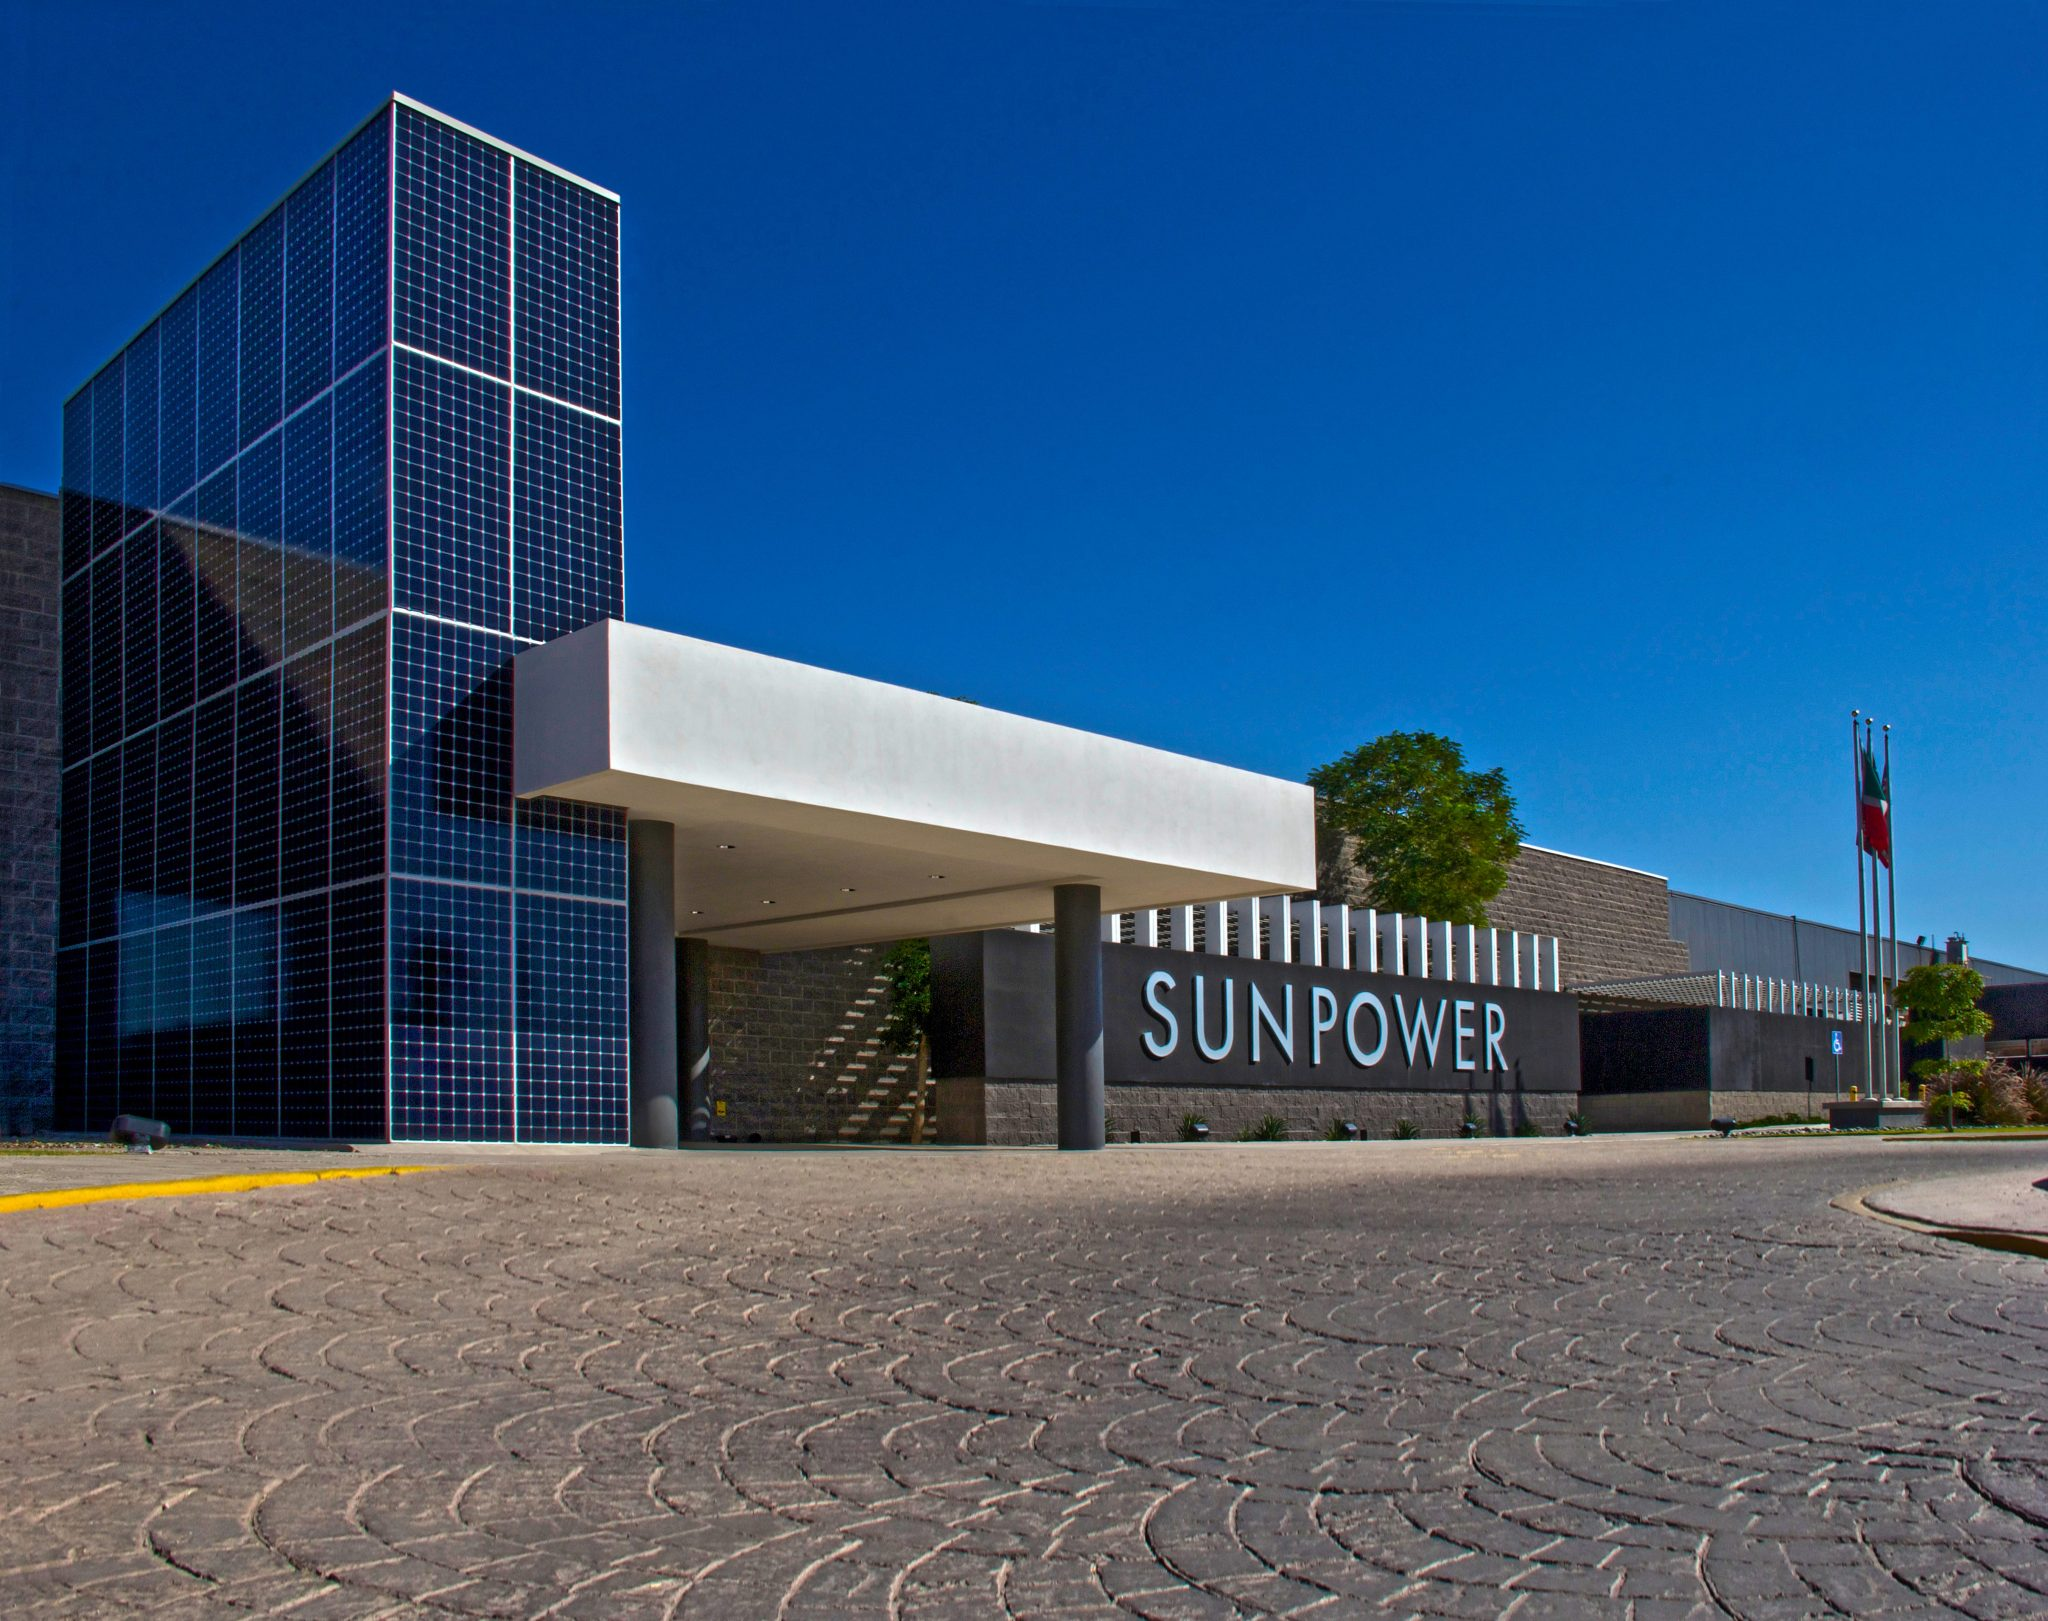 Eye level shot of Sunpower industrial facility in Mexicali, Baja California.